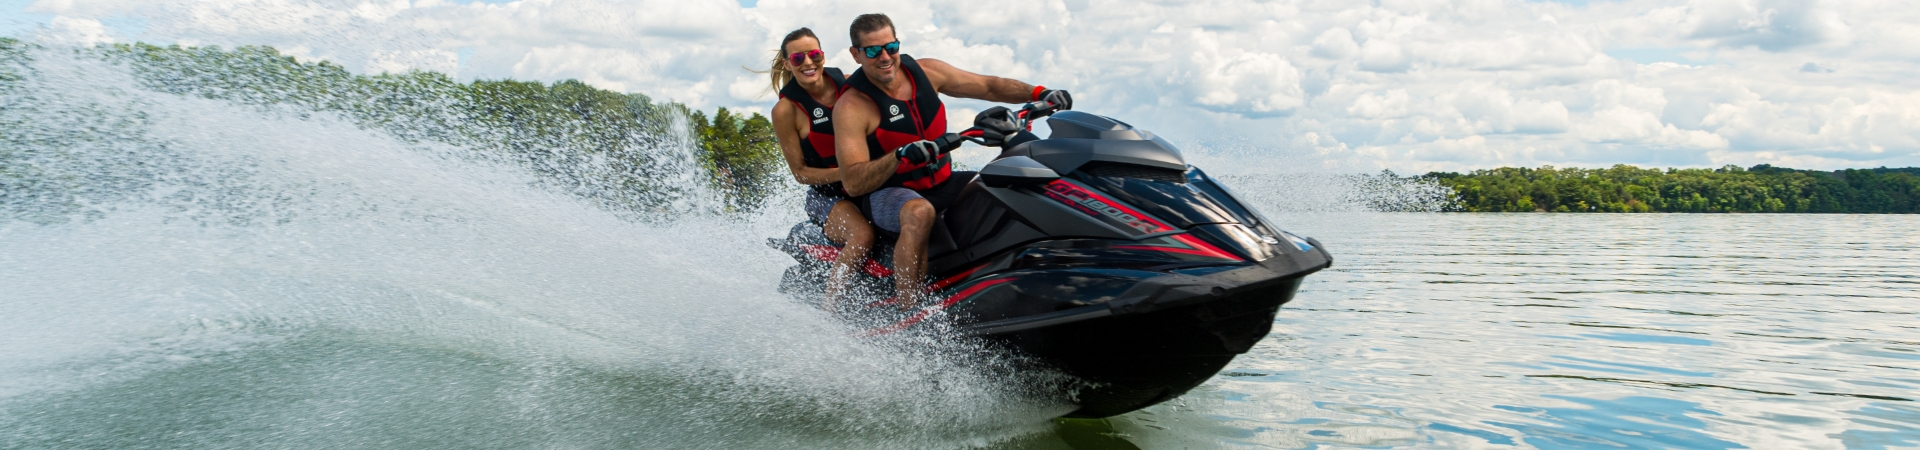 Shop WaveRunner Extended Warranty Plans